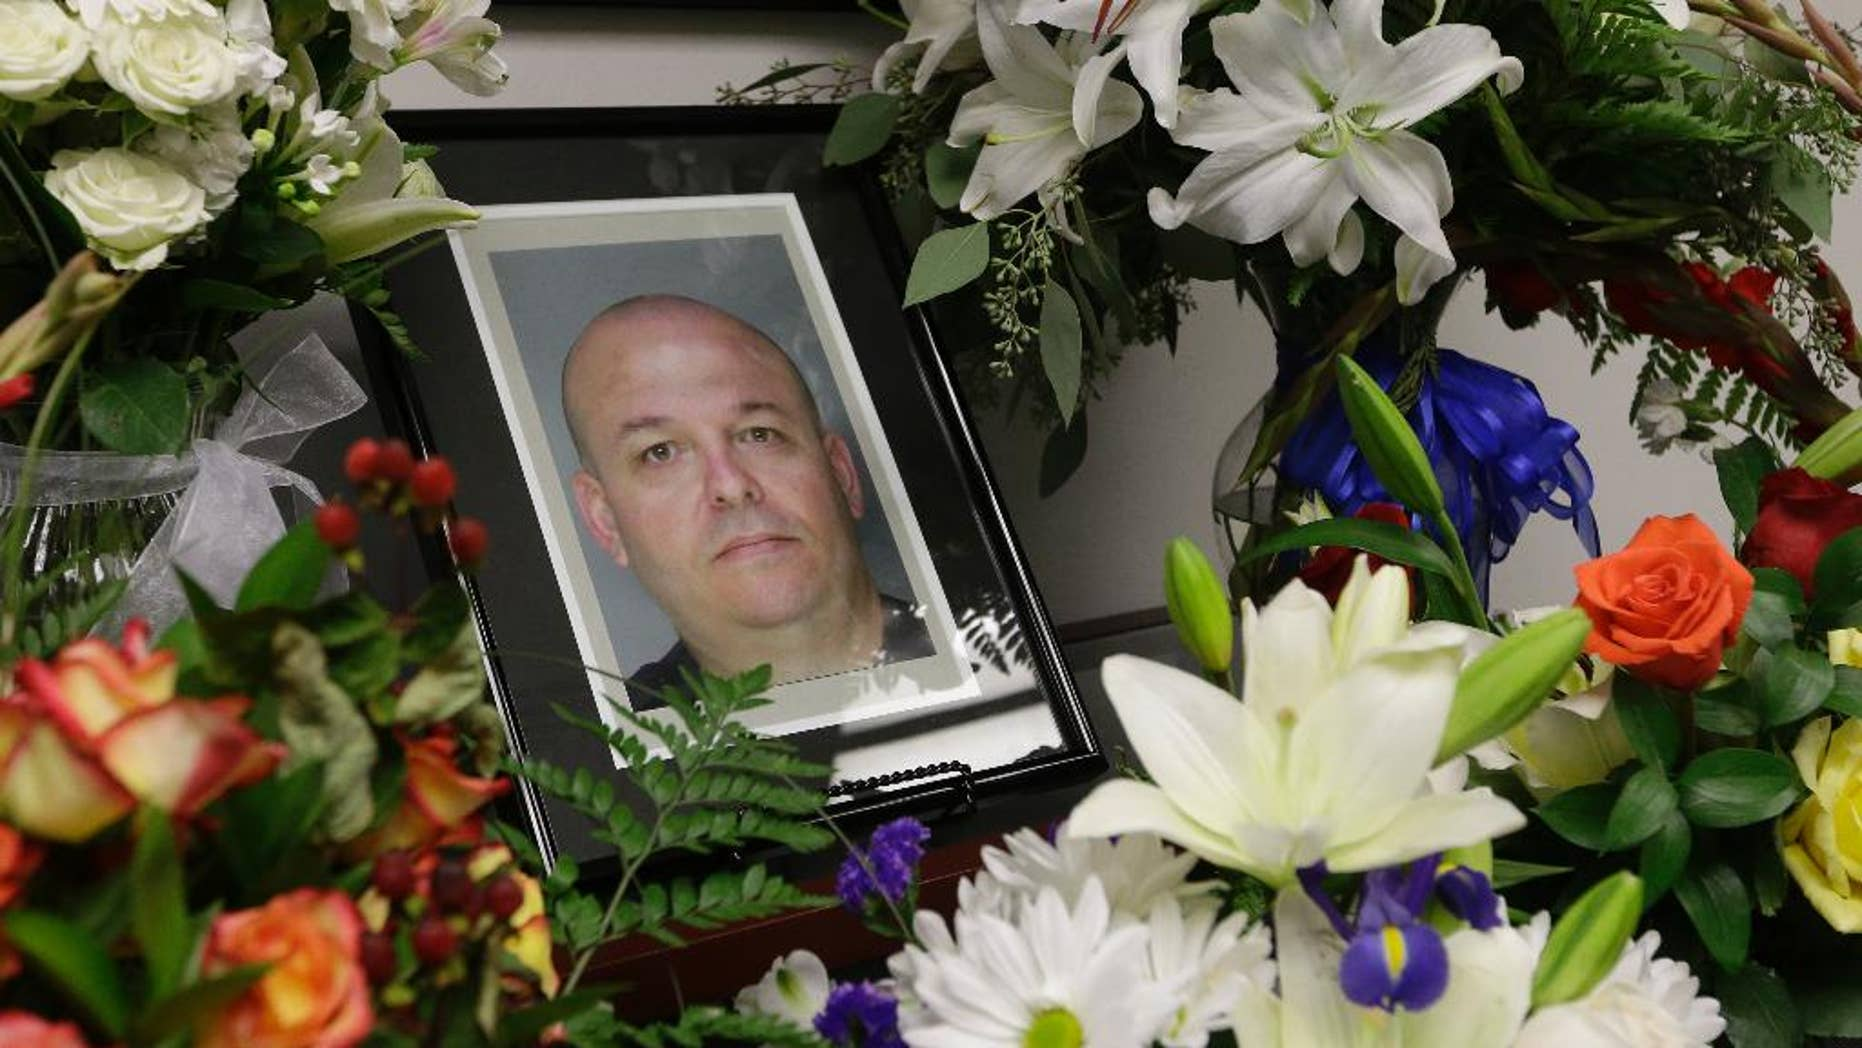 Flowers surround the photo of slain Sacramento County Deputy Sheriff Daniel Oliver,at the Sacramento County Sheriff's office in Sacramento, Calif. Tuesday, Oct, 28, 2014.  Luis Enrique Monroy-Bracamonte, who was booked into jail under the pseudonym Marcelo Marquez, and his wife, Janelle Marquez Monroy made their first appearance in Sacramento Superior Court,  Tuesday, to face murder charges related to the death of Oliver, Placer County homicide detective Michael Davis, and the wounding of another deputy and a bystander during a crime spree that spread over two Northern California counties last week.(AP Photo/Rich Pedroncelli)